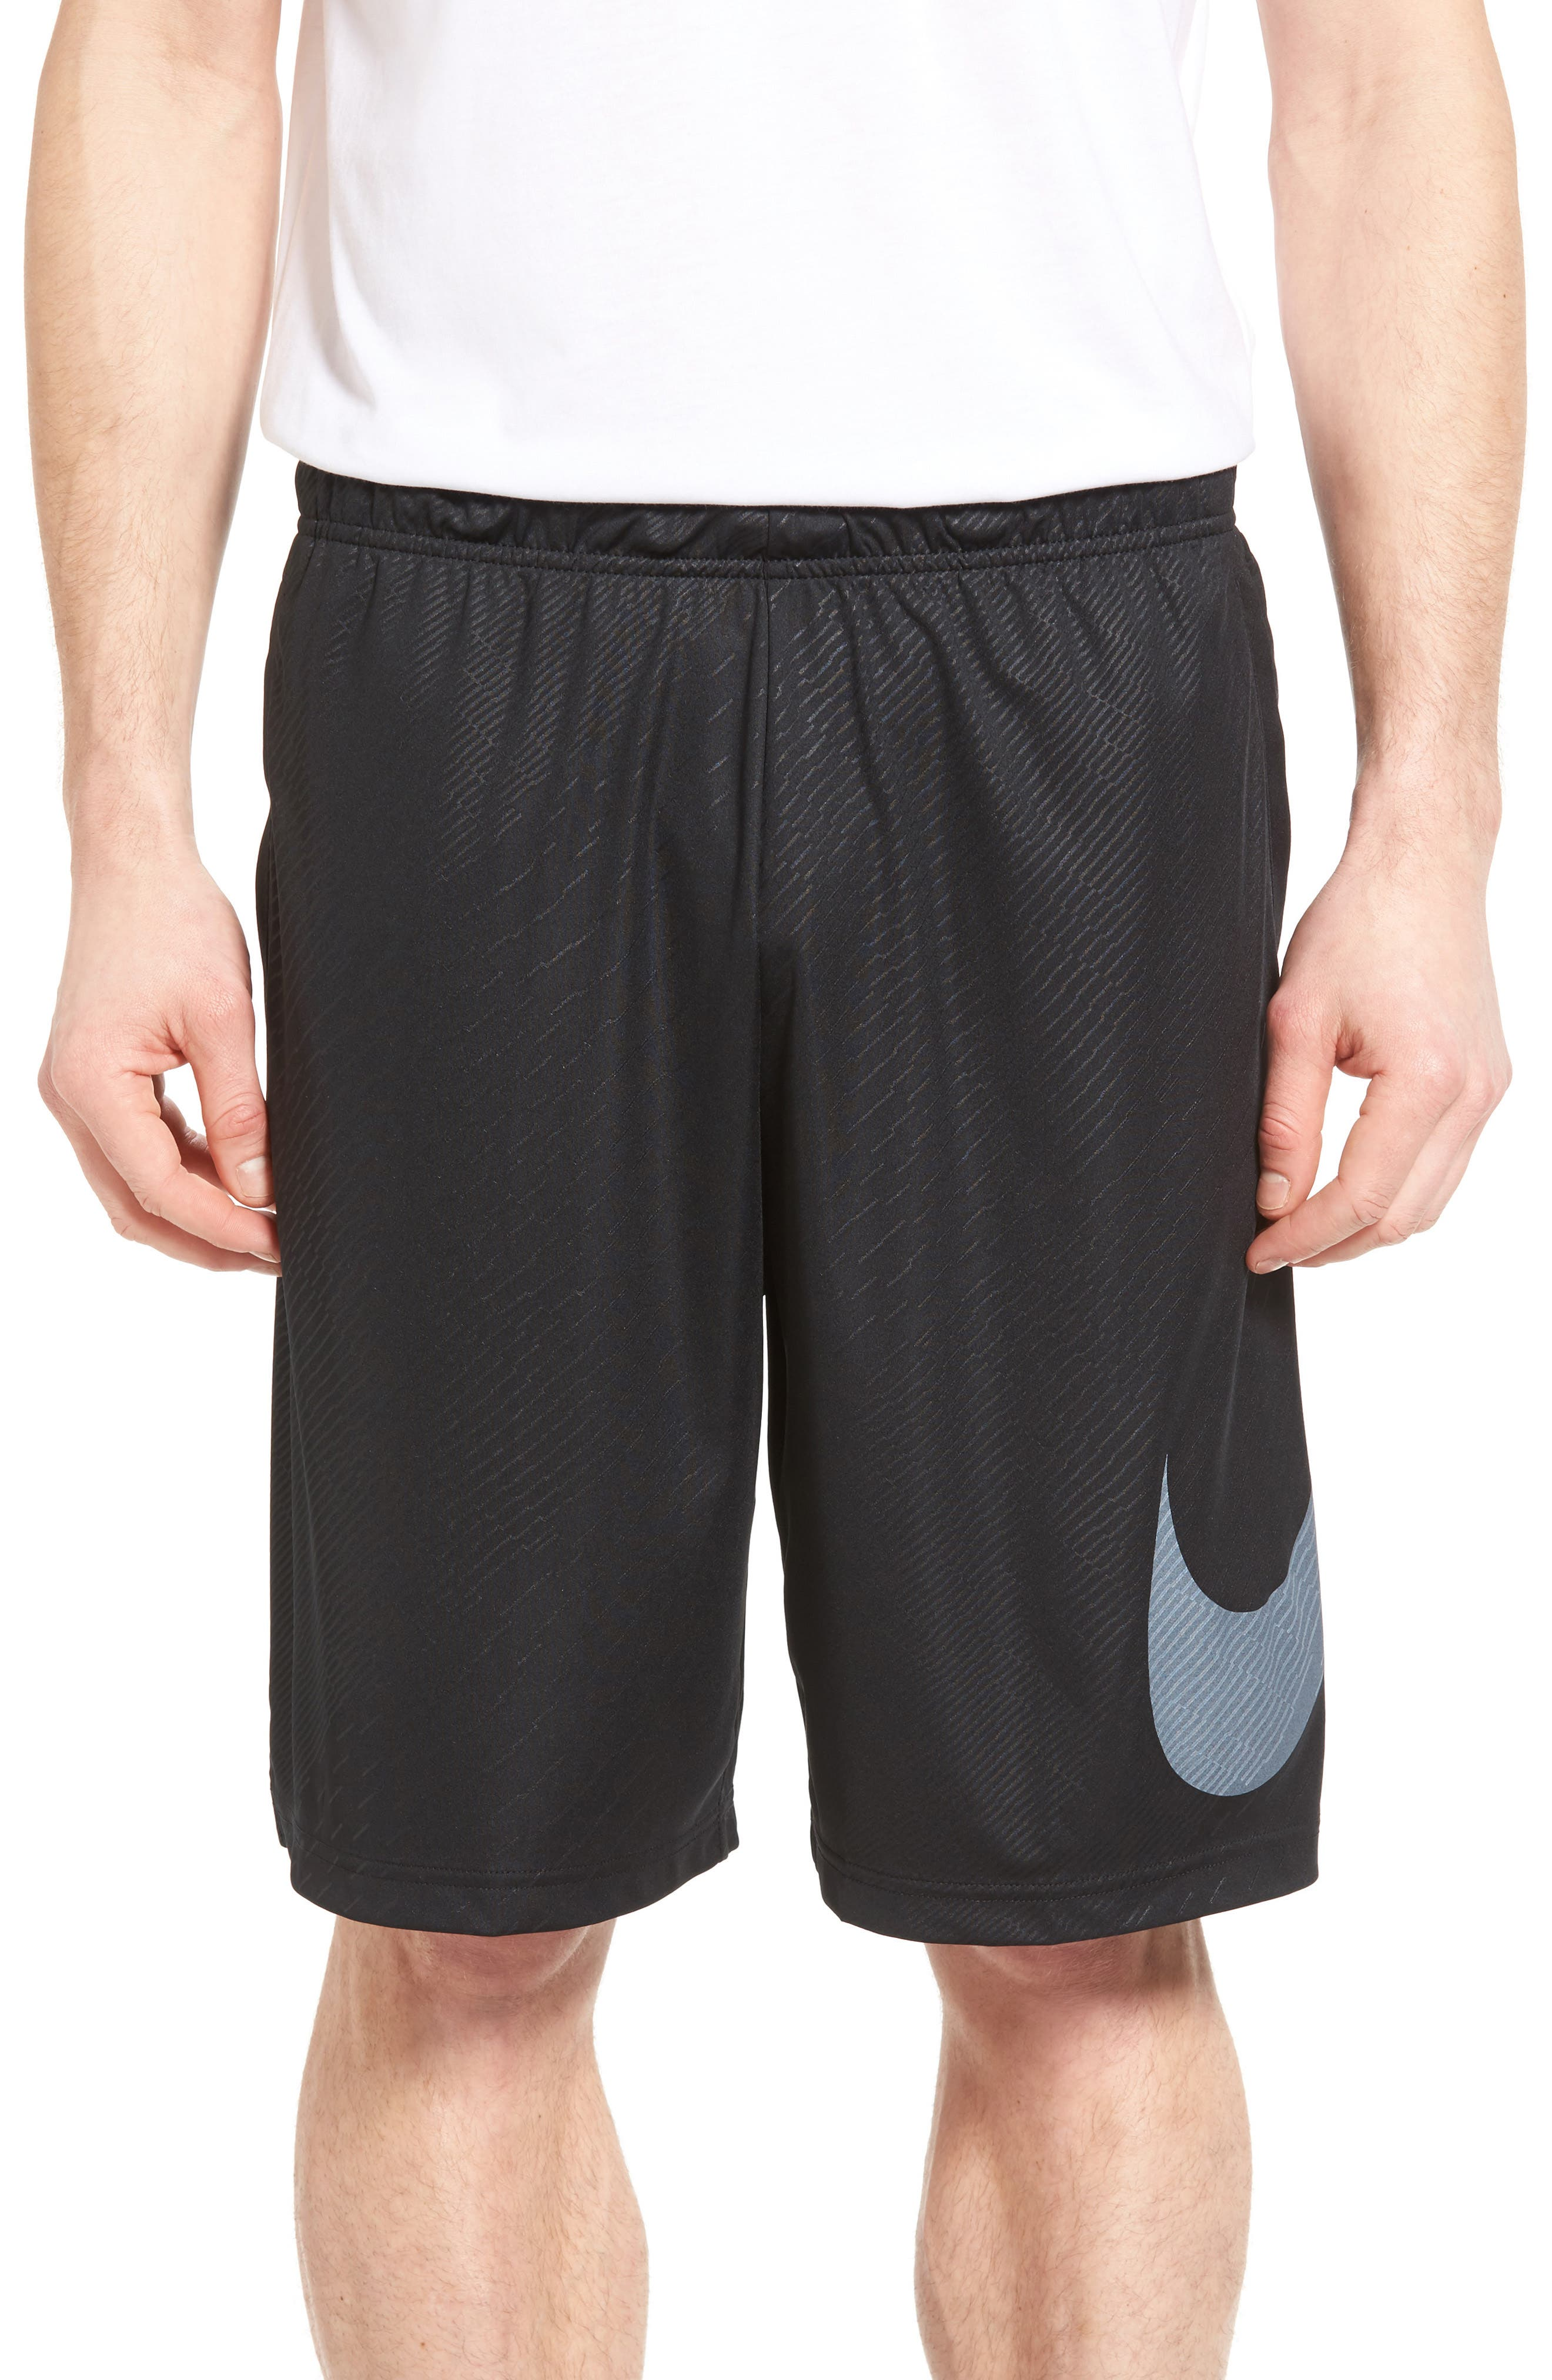 Mens basketball shorts on sale free shipping - Mens Basketball Shorts On Sale Free Shipping 57